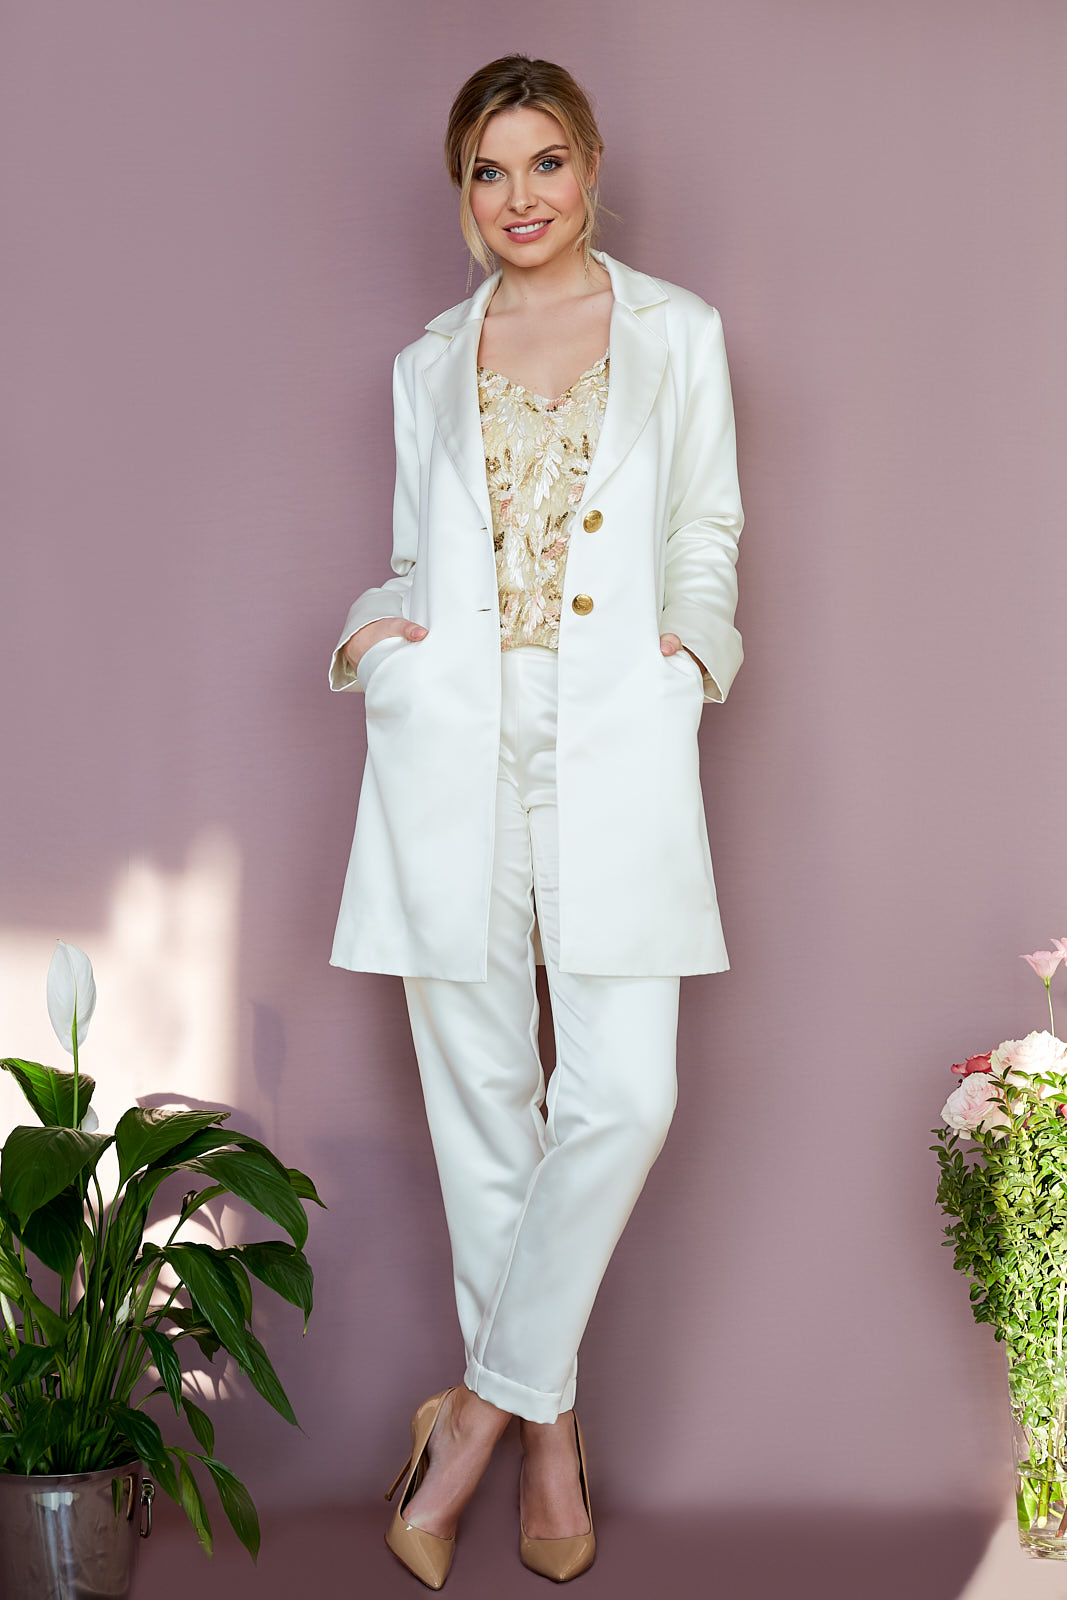 Tux Coat, Sequin Cami, & Pegged Trousers  Tux Coat in Satin Polyester, Vintage Buttons & Surprise Lurex Lining  Sequin Mesh Cami with Silk Charmeuse Lining  Pegged Trousers in Satin Polyester, lined in Sandwashed Satin Silk